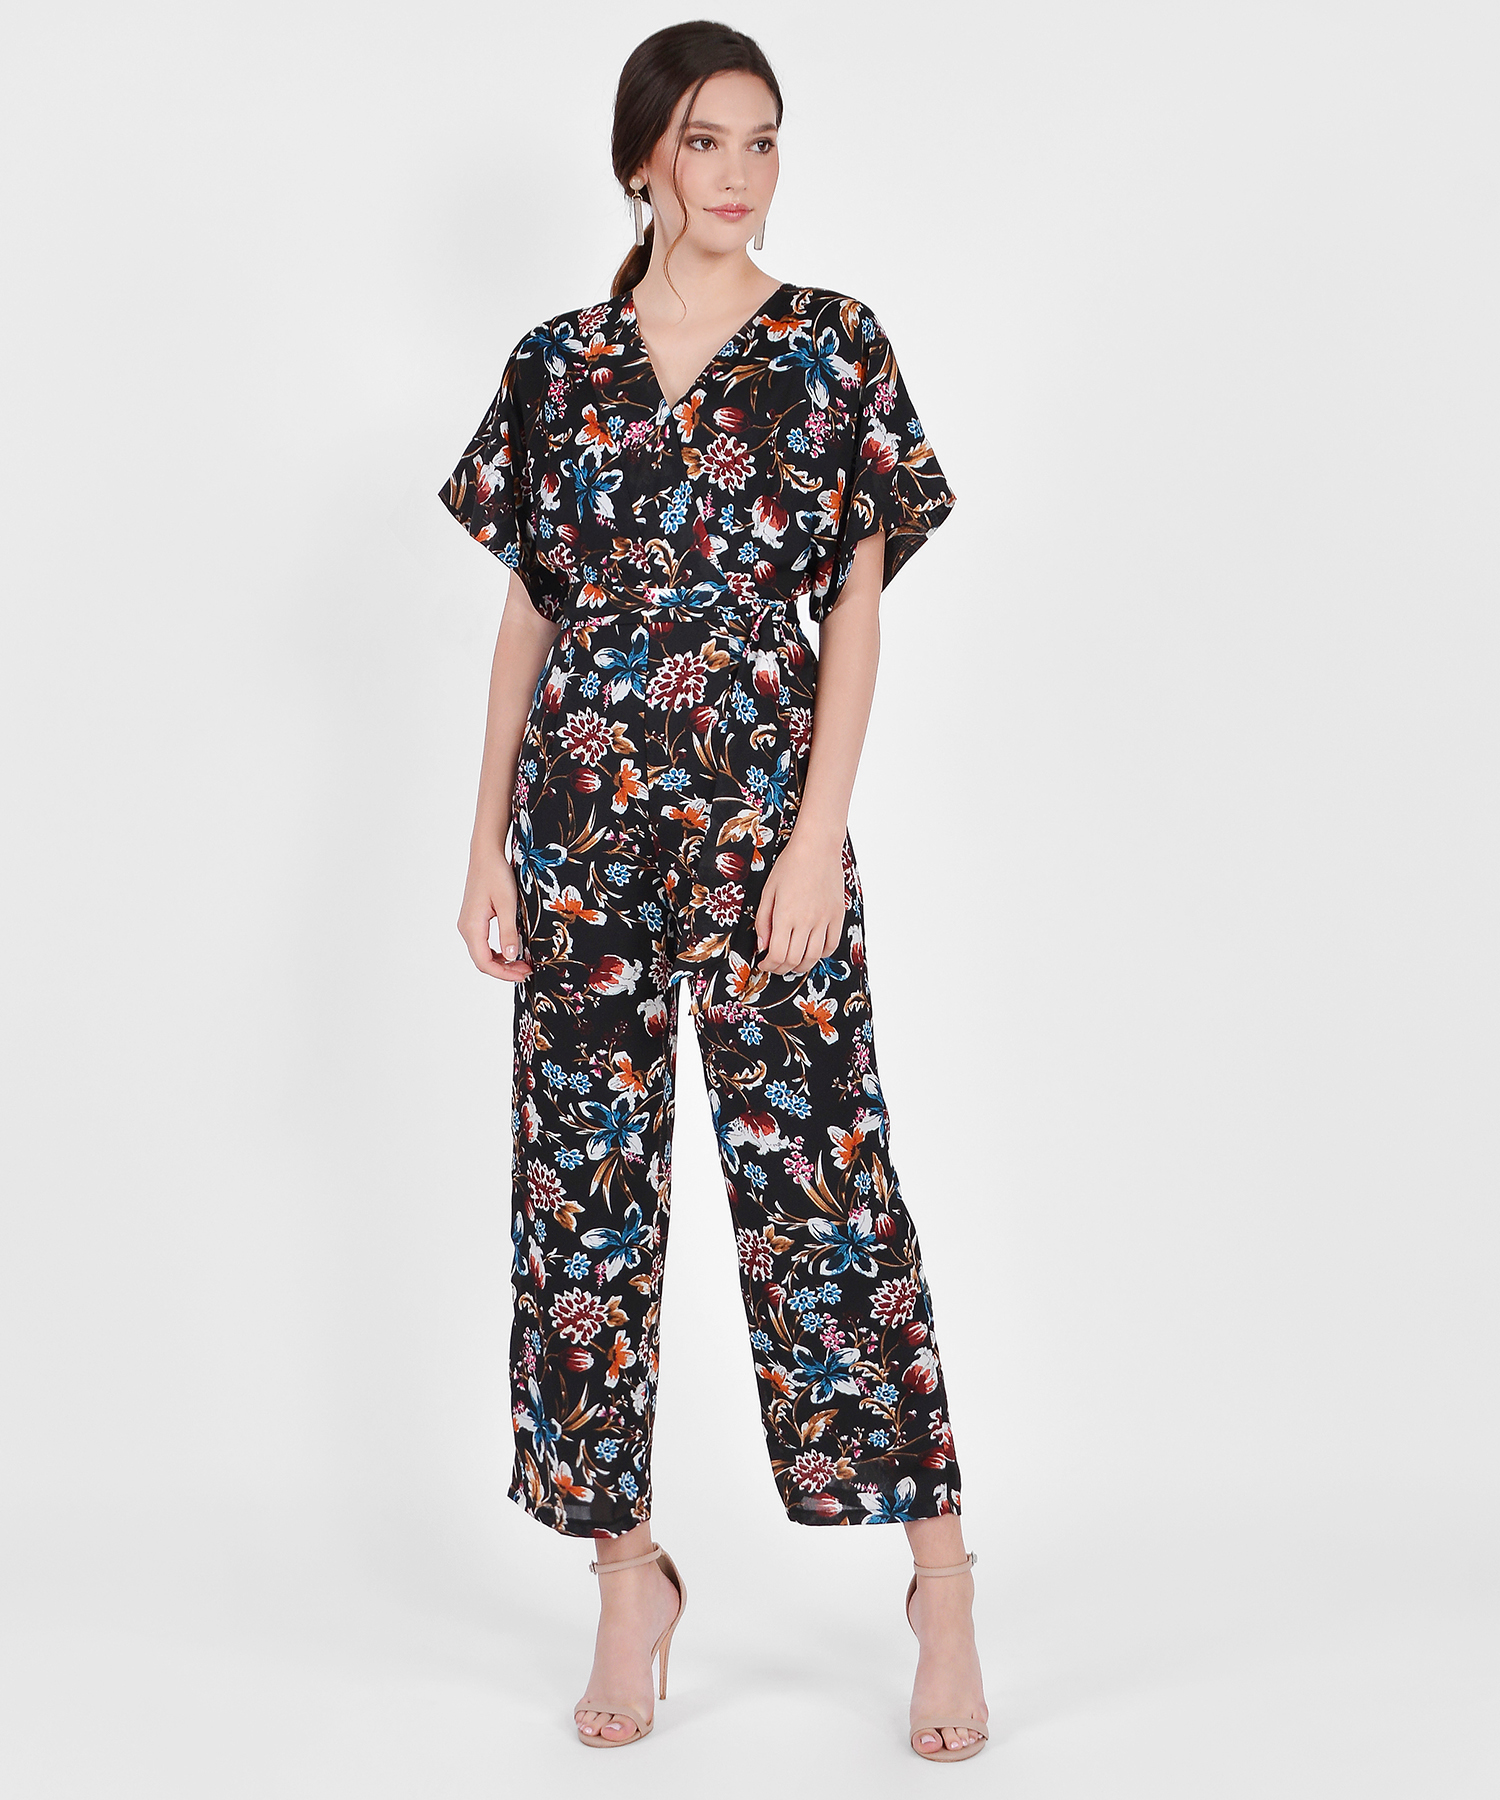 de46cfefbb3 ... Hana Kimono Floral Jumpsuit - Black. Local Shipping Rates